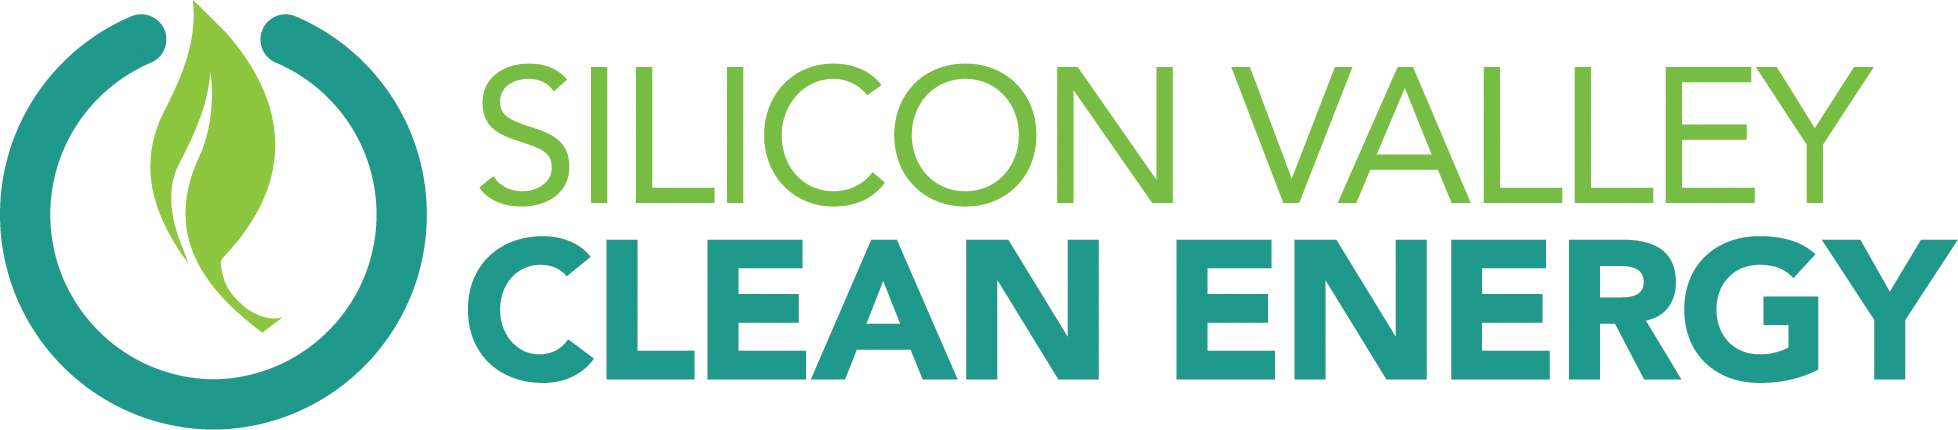 silicon valley clean energy logo